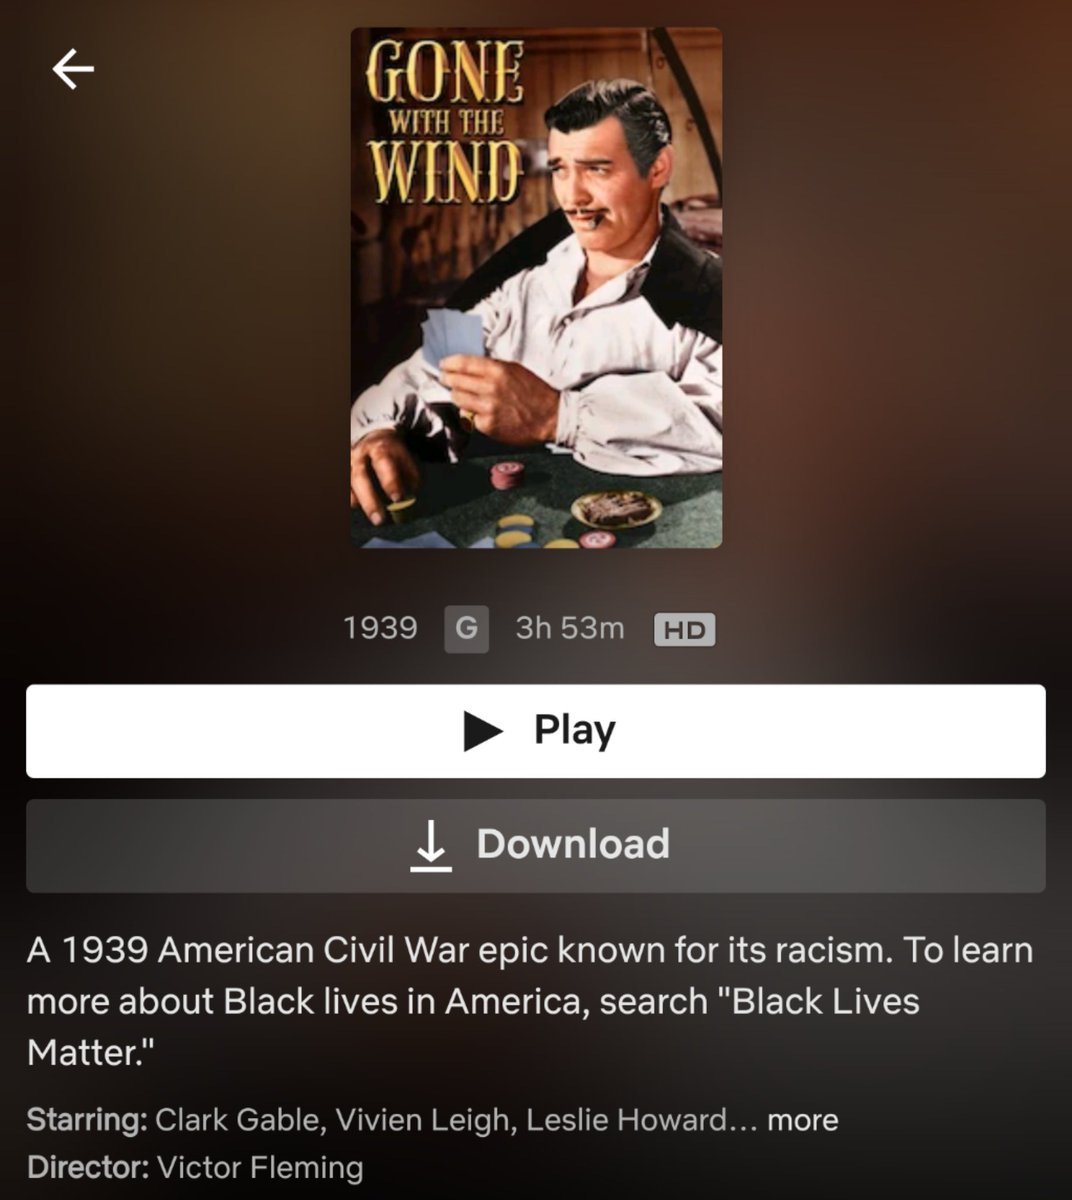 came across this 🔥 description of Gone with the Wind on @netflix today #BlackLivesMatter https://t.co/J8UYy94tCM